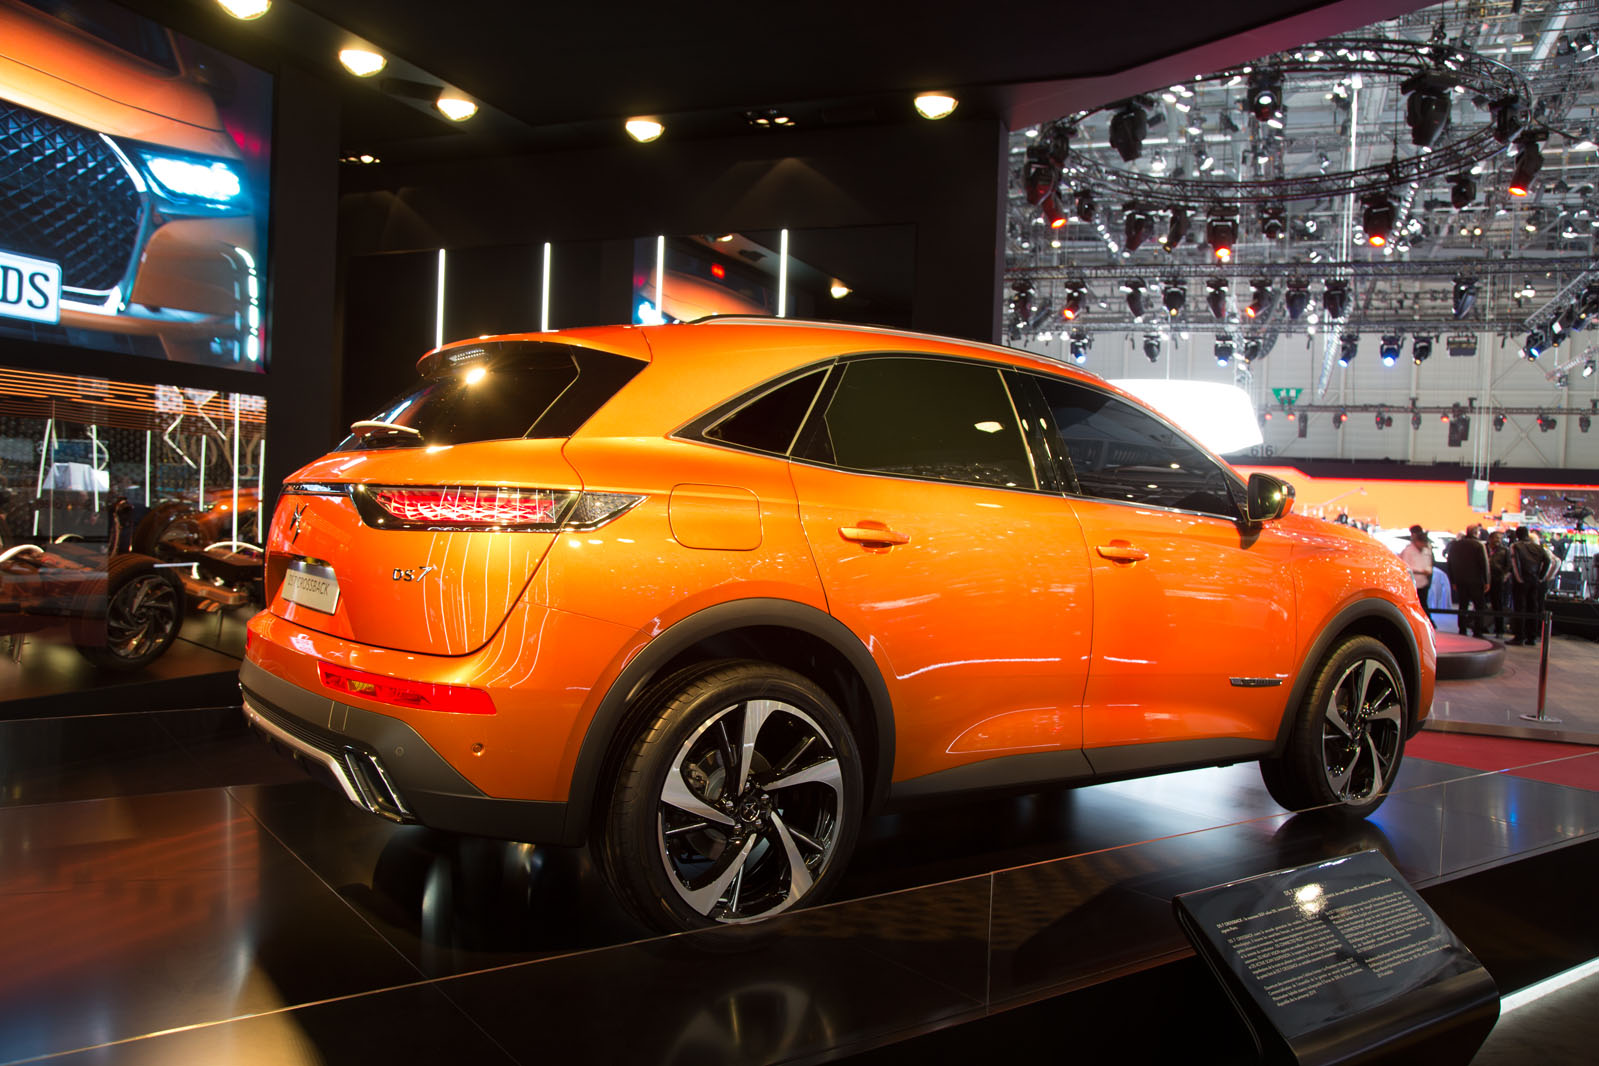 2017 DS 7 Crossback priced from £28,050 | Autocar